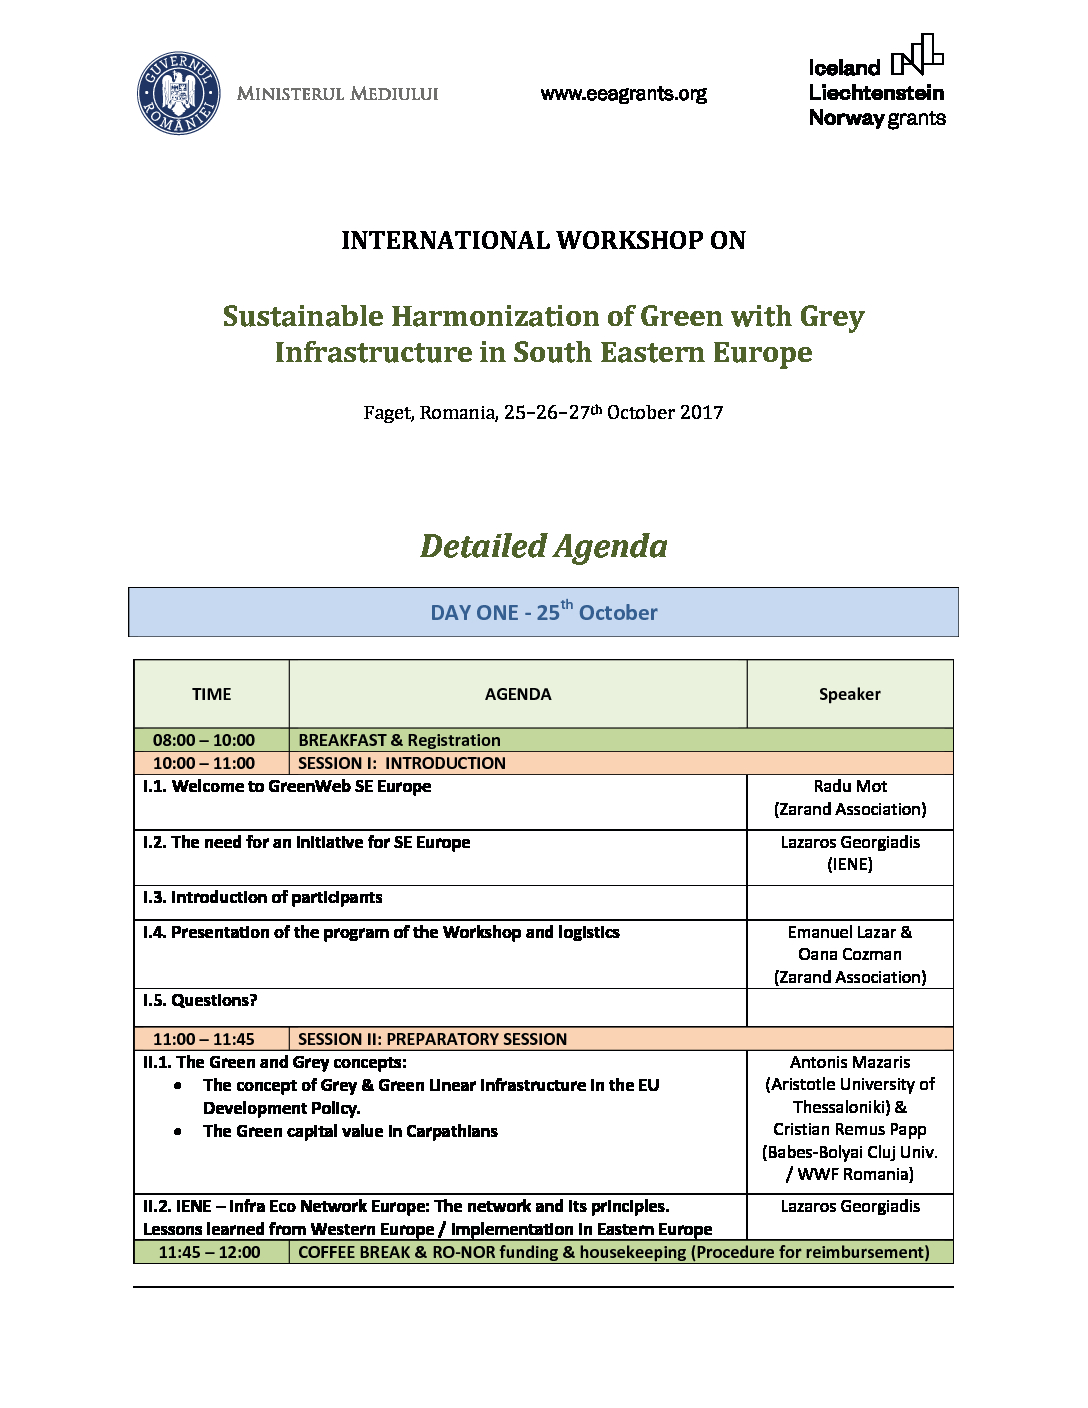 Agenda_Faget_Workshop